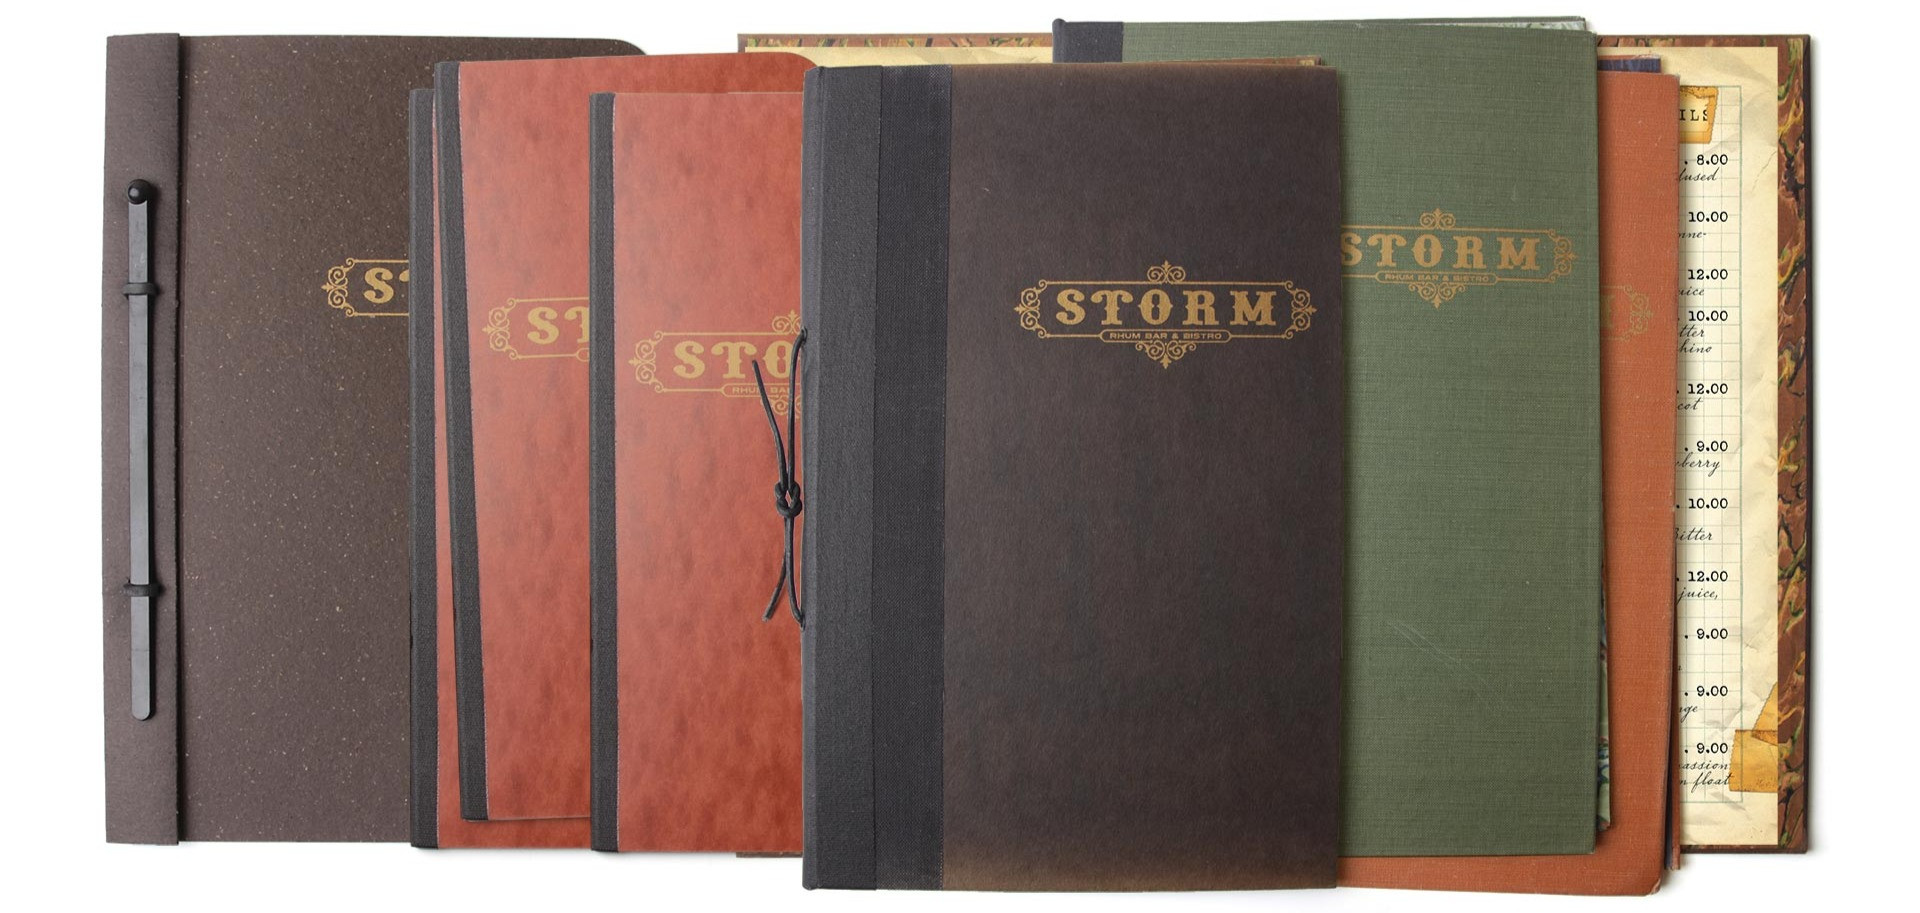 storm_menu_covers_edited.jpg